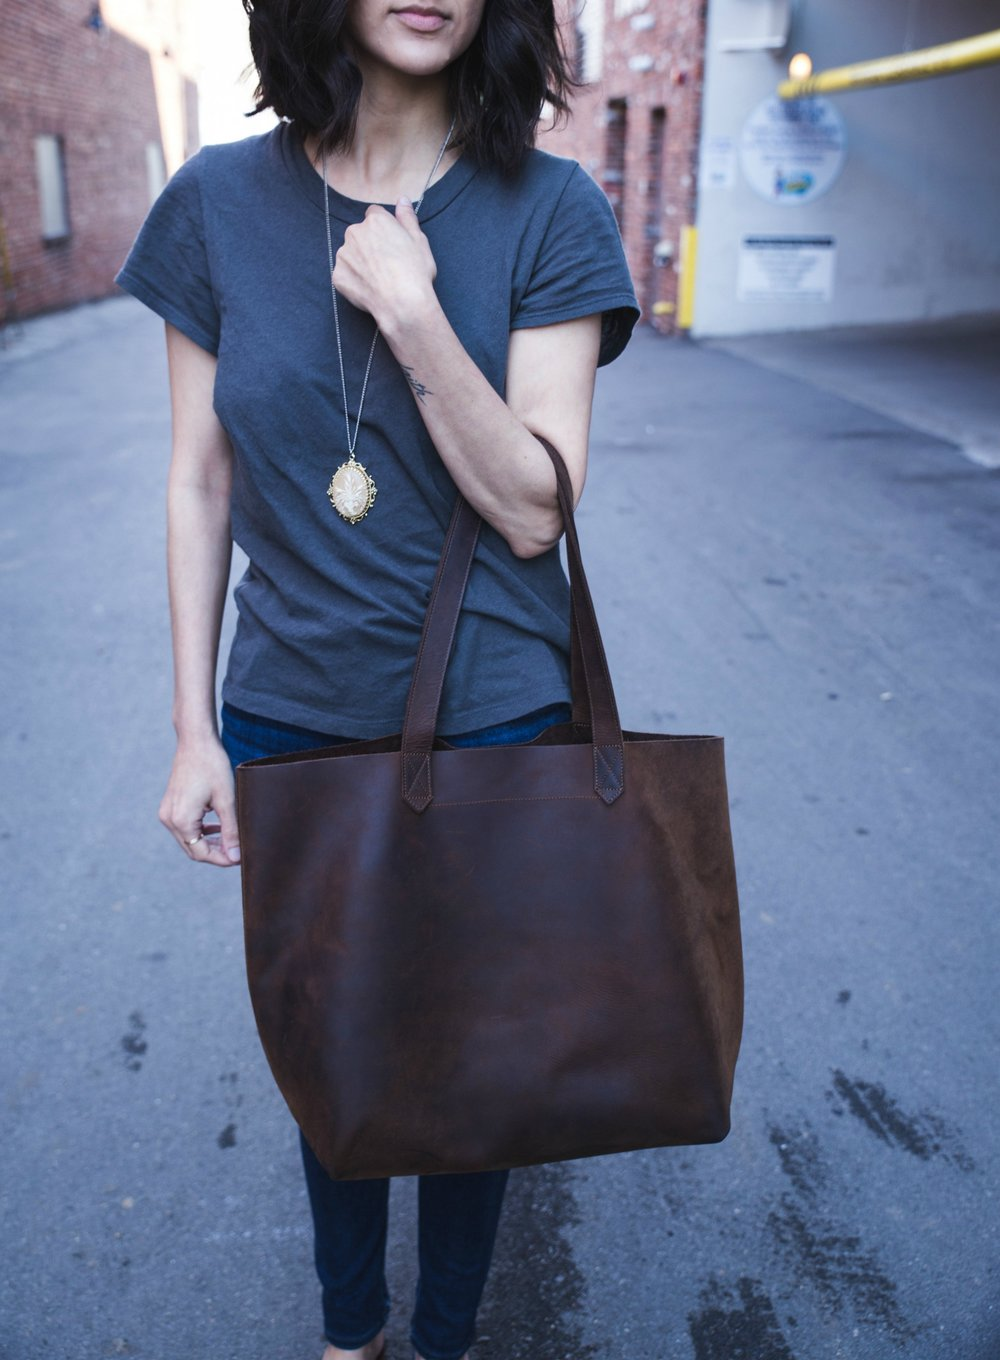 Pictured: Lori Tote in Oak